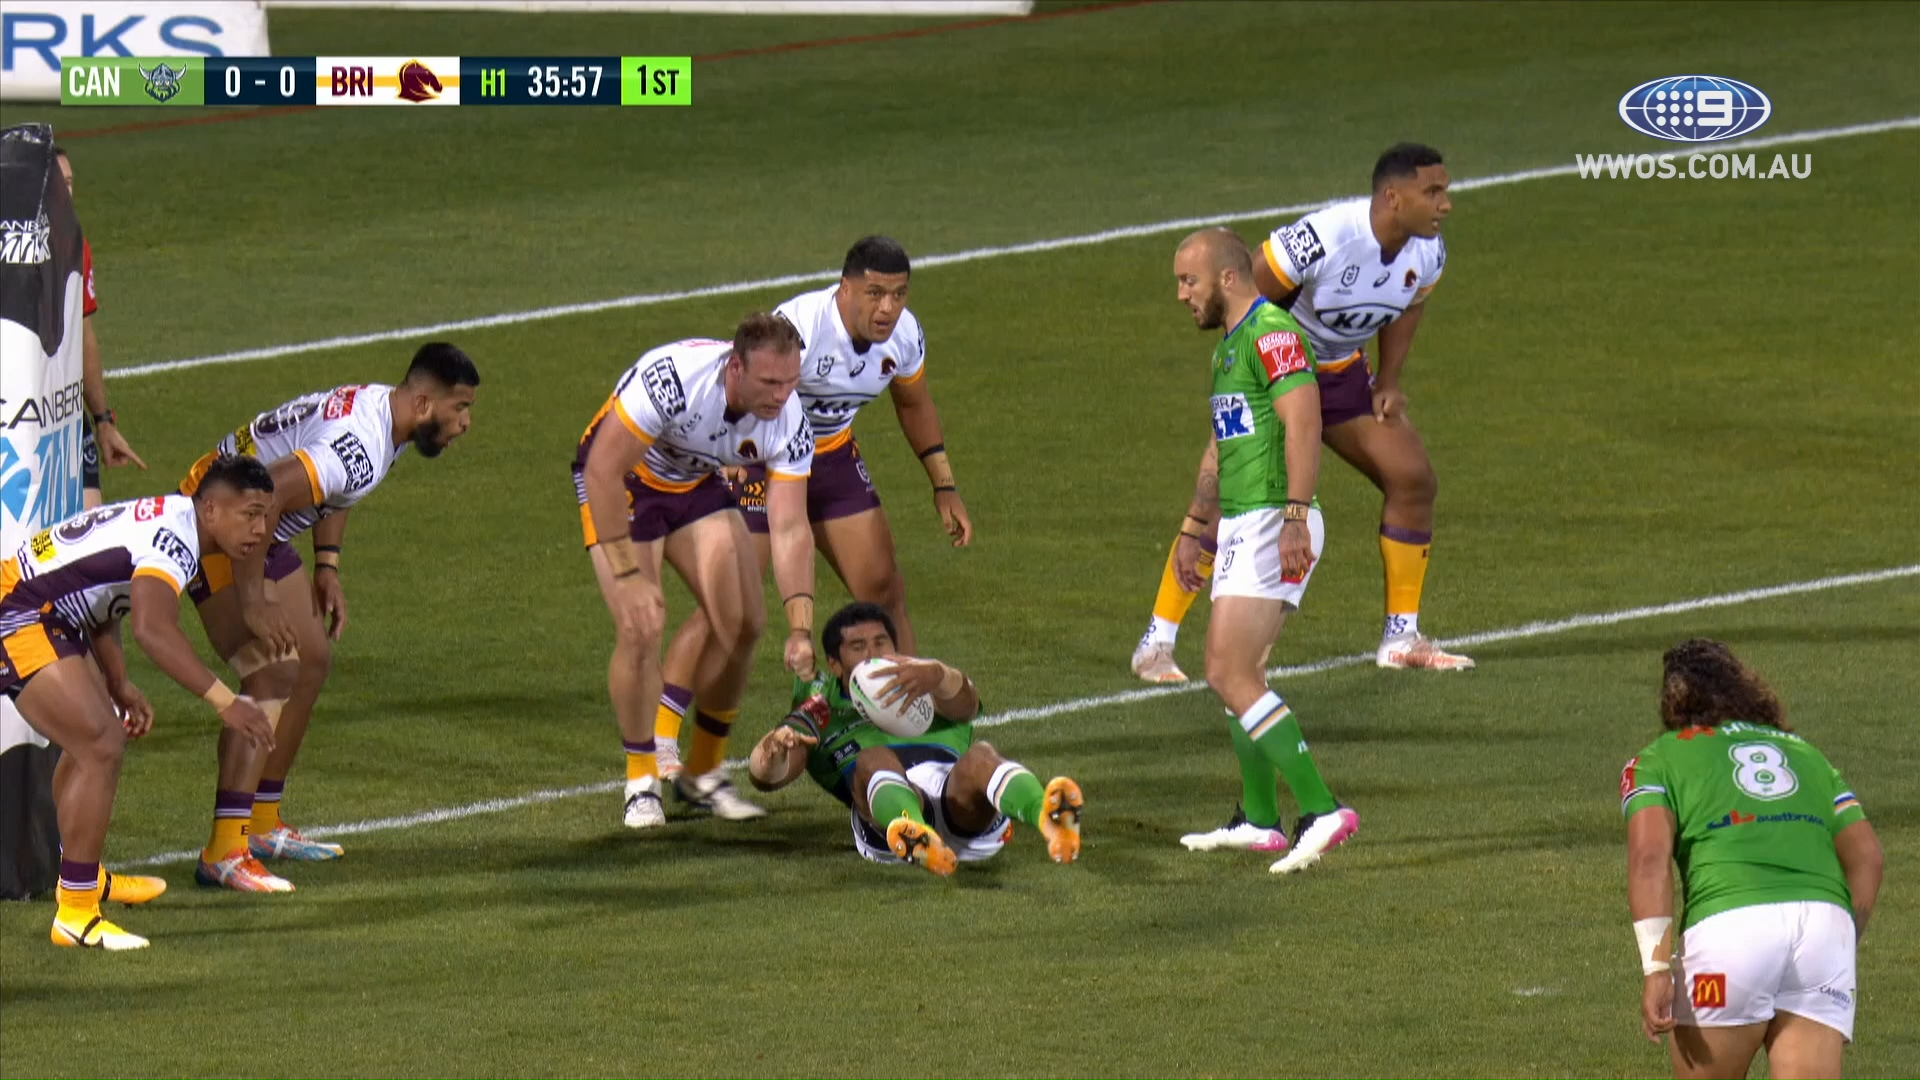 NRL Highlights: The Raiders bounce back to trash the Broncos at home - Round 14